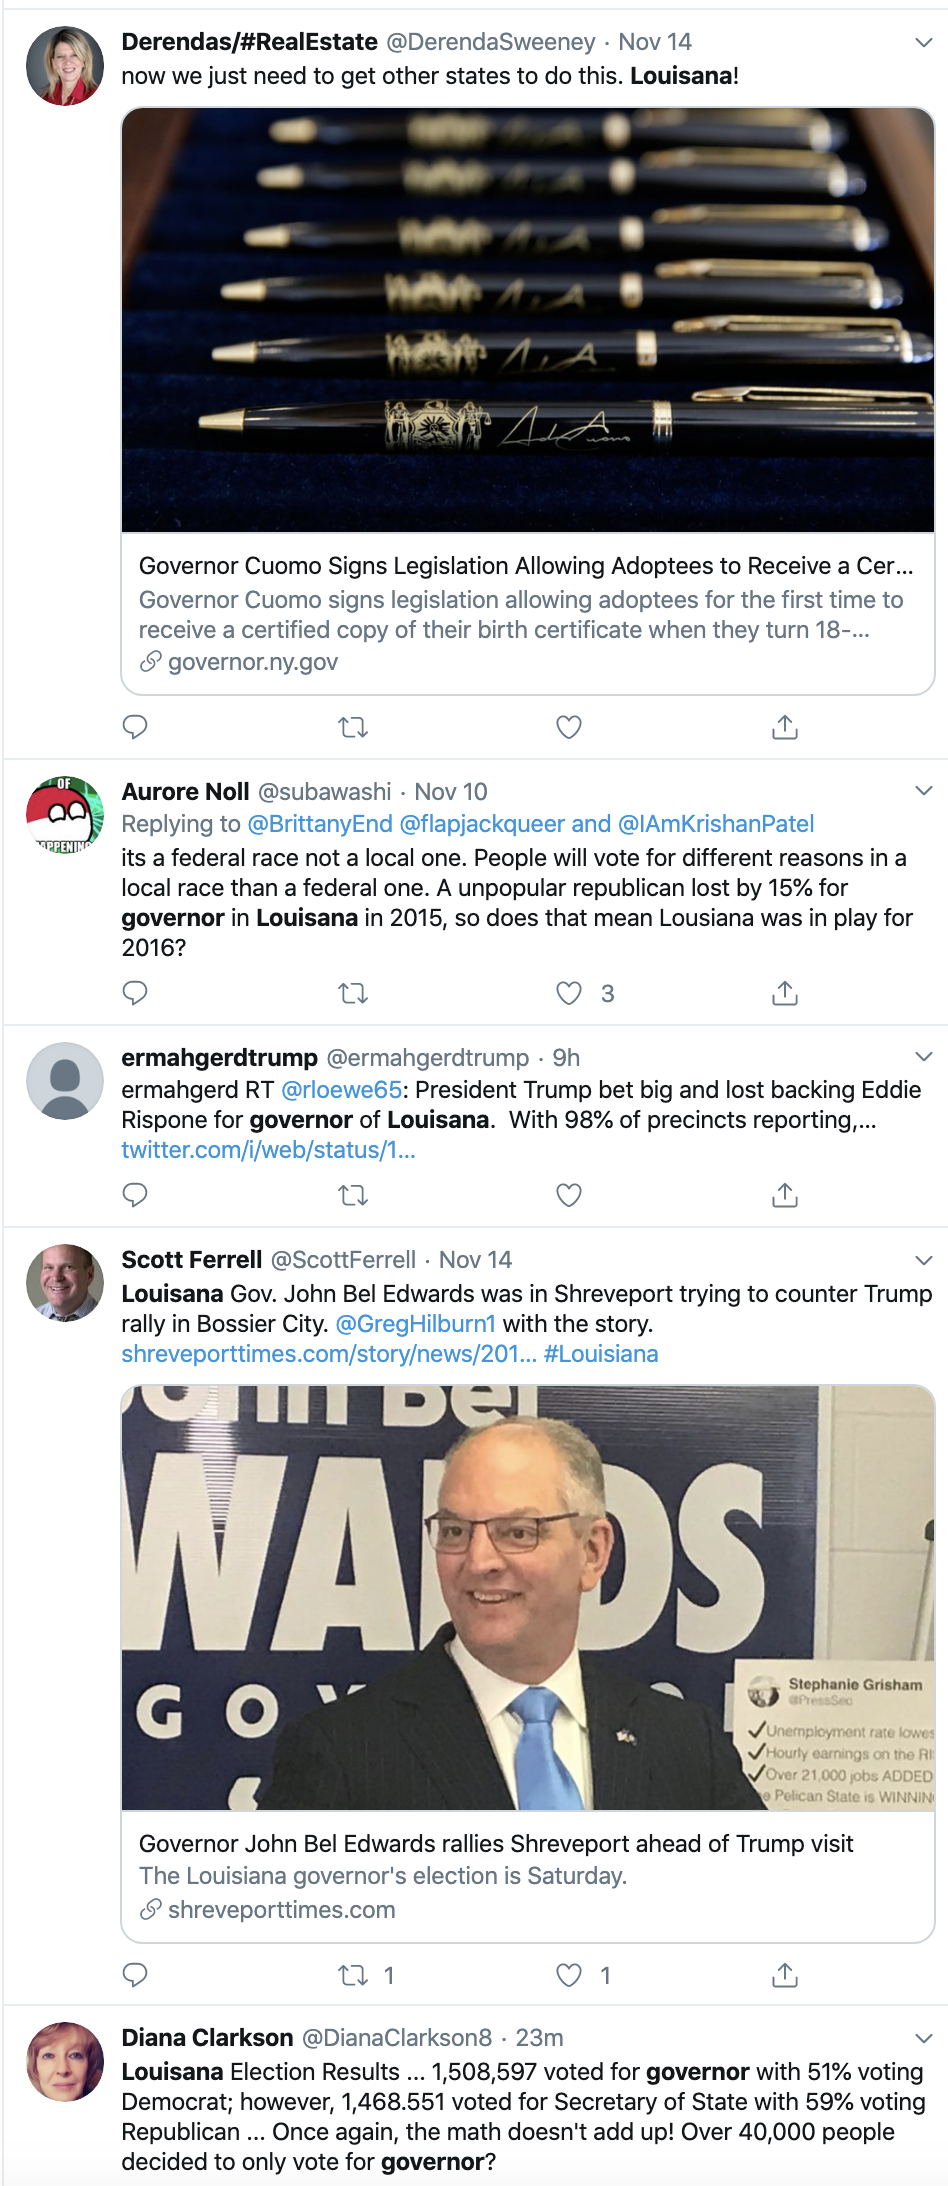 Screen-Shot-2019-11-17-at-8.16.47-AM Thousands Troll Trump Over Louisiana Governor Election Loss Domestic Policy Donald Trump Election 2018 Election 2020 Featured Politics Top Stories